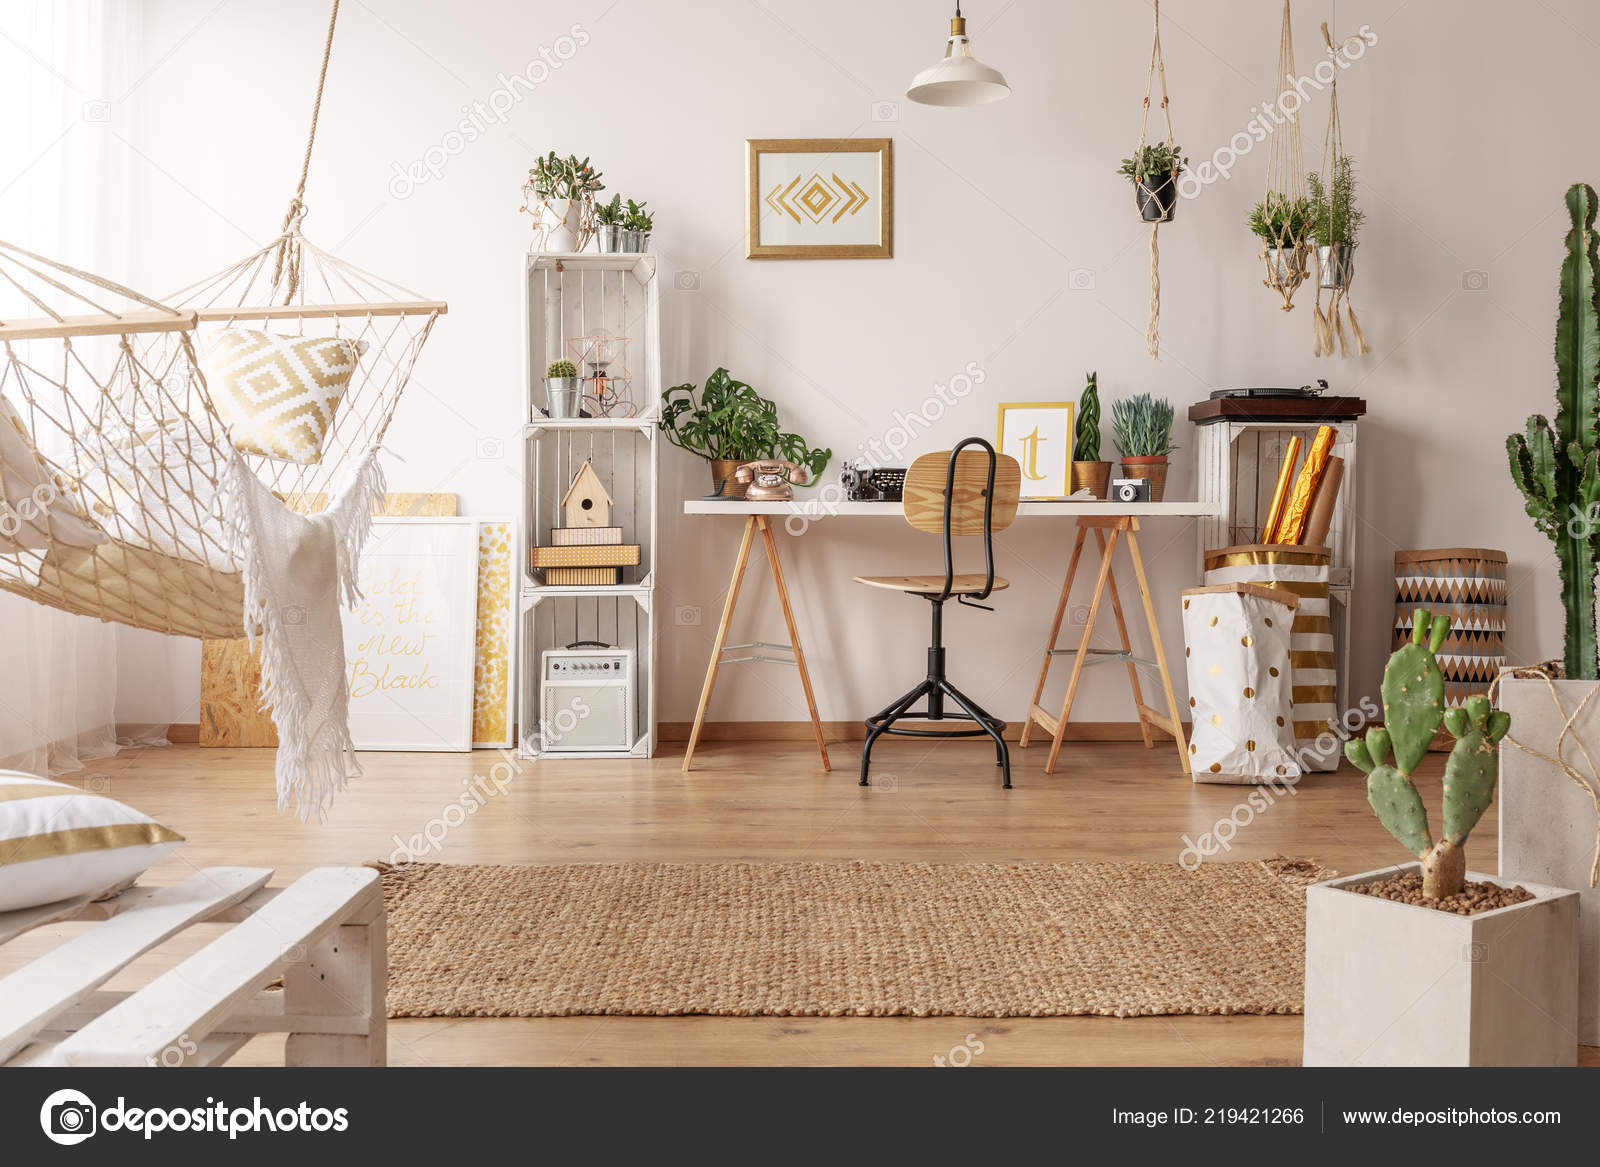 Real Photo Of Bright Room Interior With Hammock, Fresh Plants And Home  Office Corner With Wooden Desk, Chair And Decor U2014 Photo By Photographee.eu